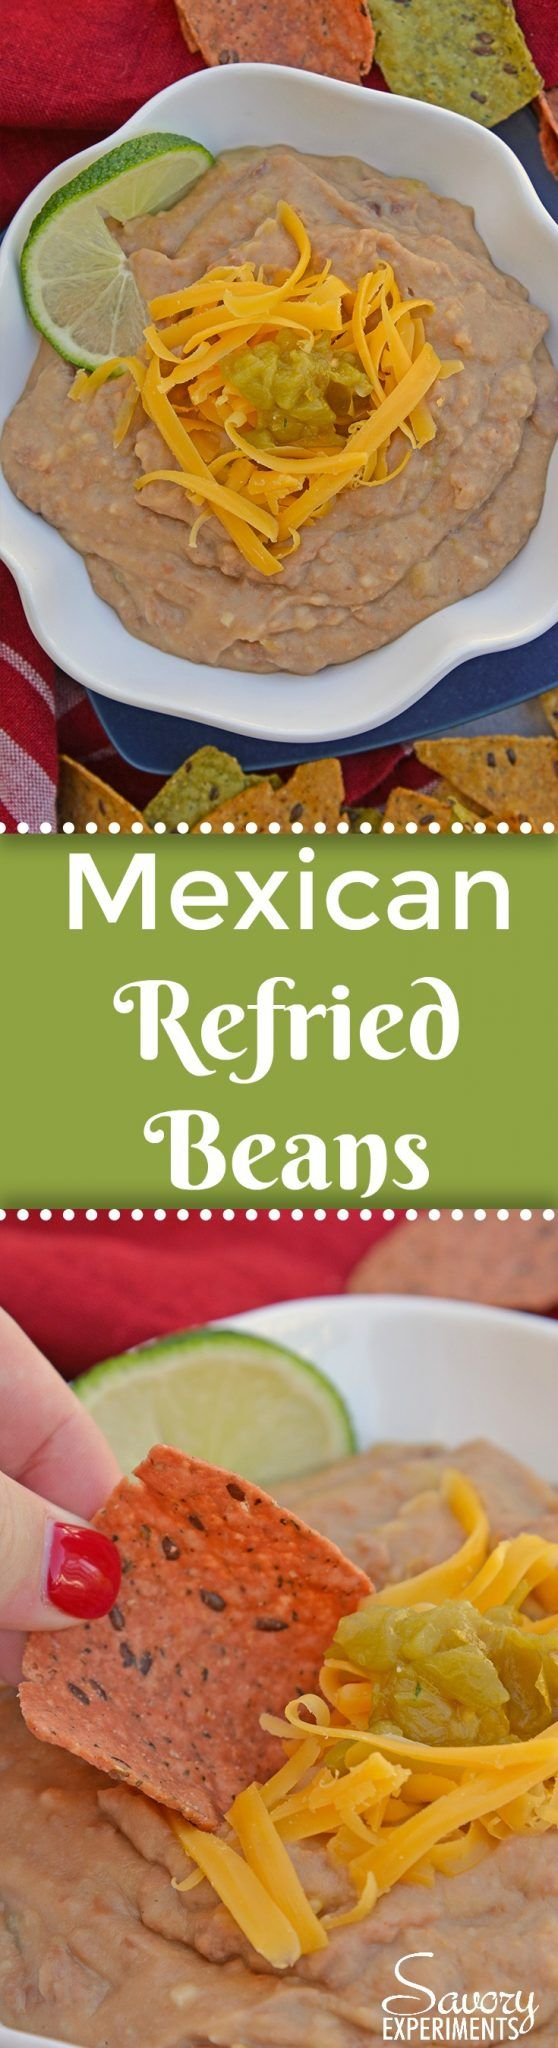 Mexican Refried Beans are an easy homemade refried bean recipe using pinto beans, green chilies, cheese and Mexican spices. Ready in just 15 minutes! #refriedbeans #mexicansidedish AD www.savoryexperiments.com  via @savorycooking